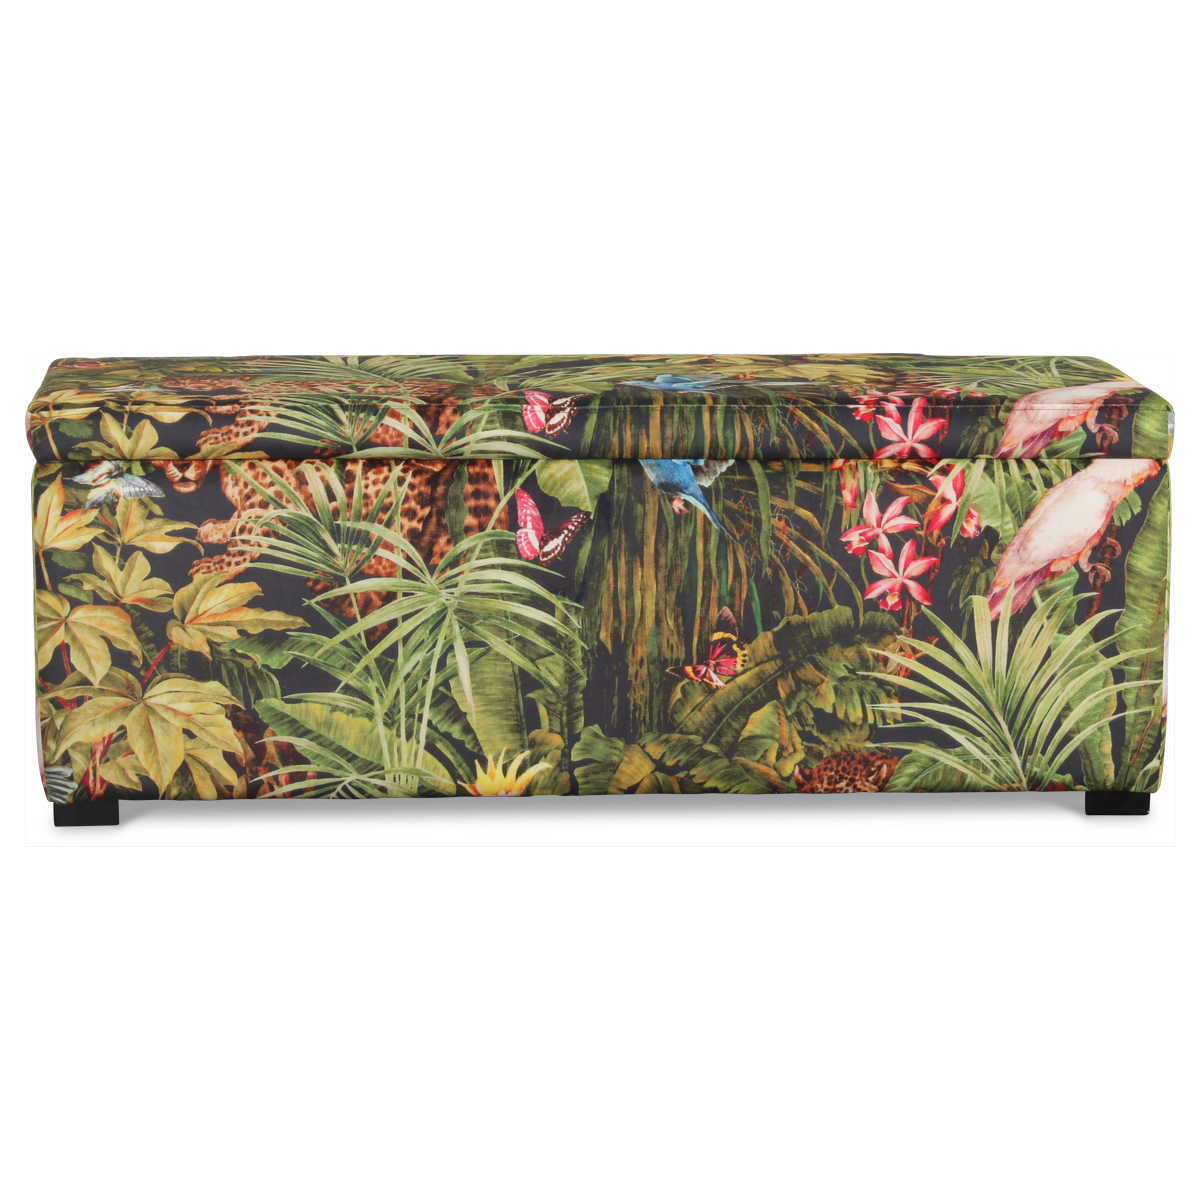 Banquette coffre en velours imprimé jungle - Multicolore - 120 x 40 x H 45 cm